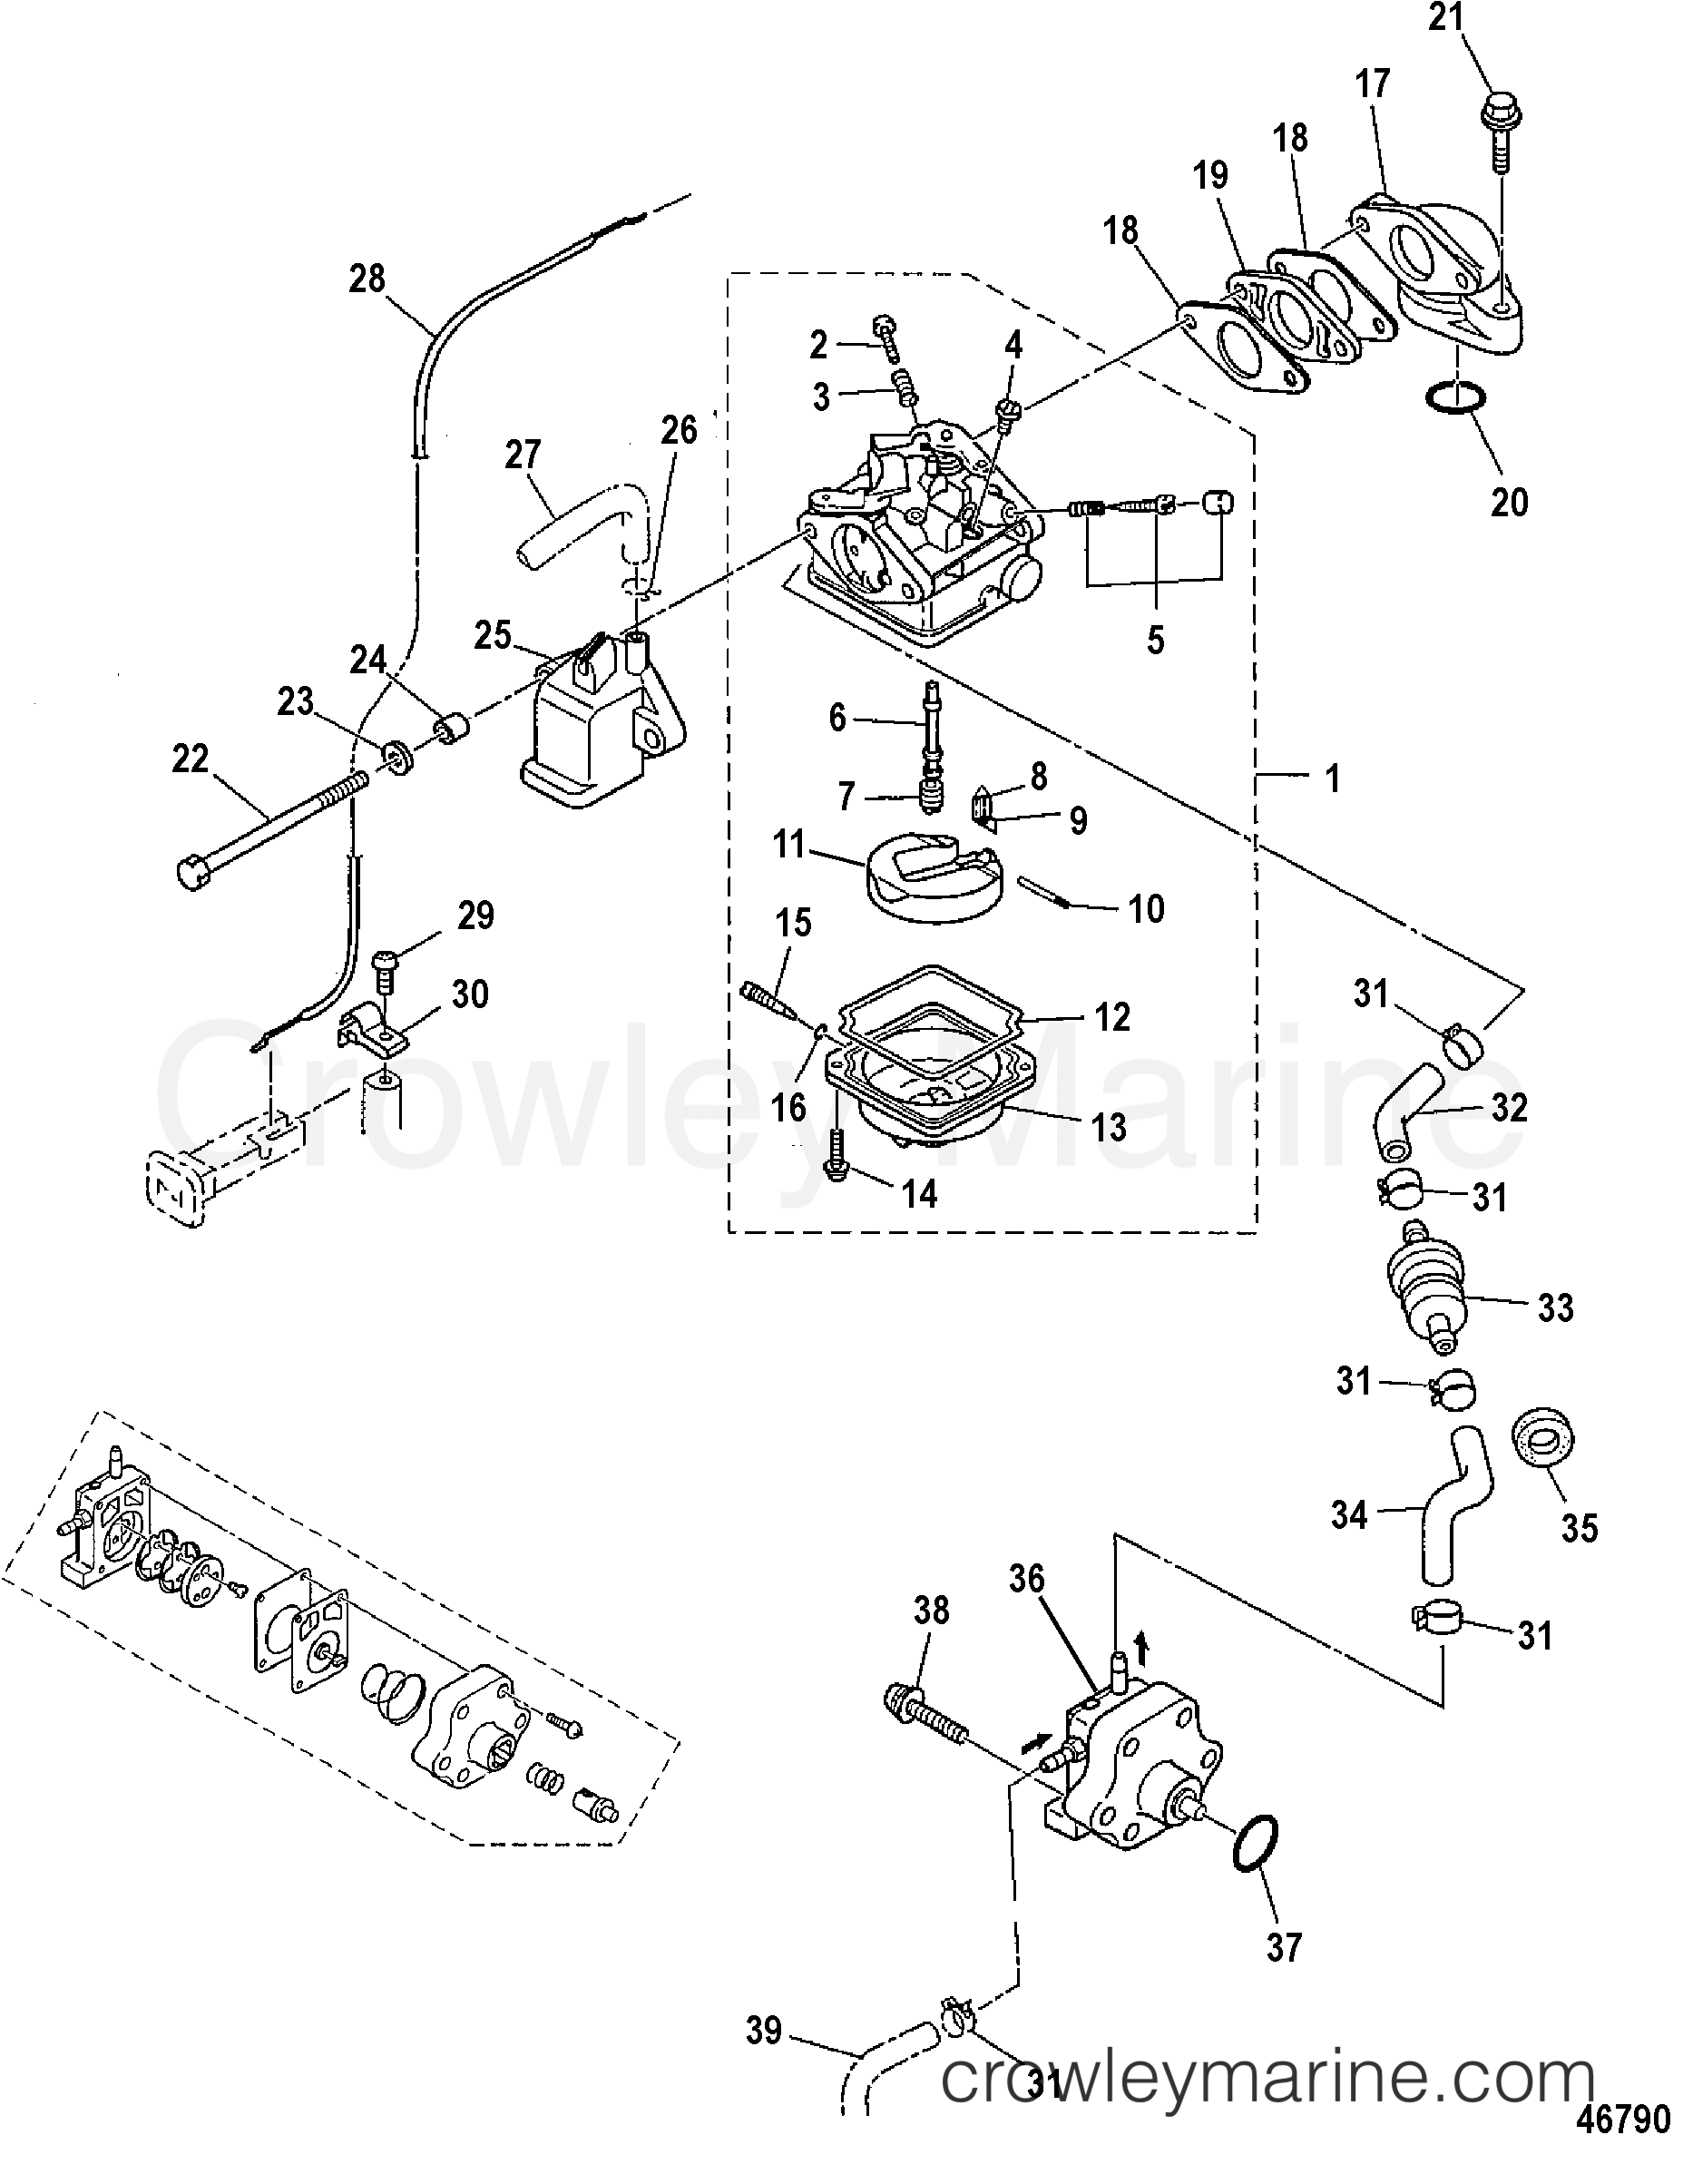 Carburetor And Fuel System